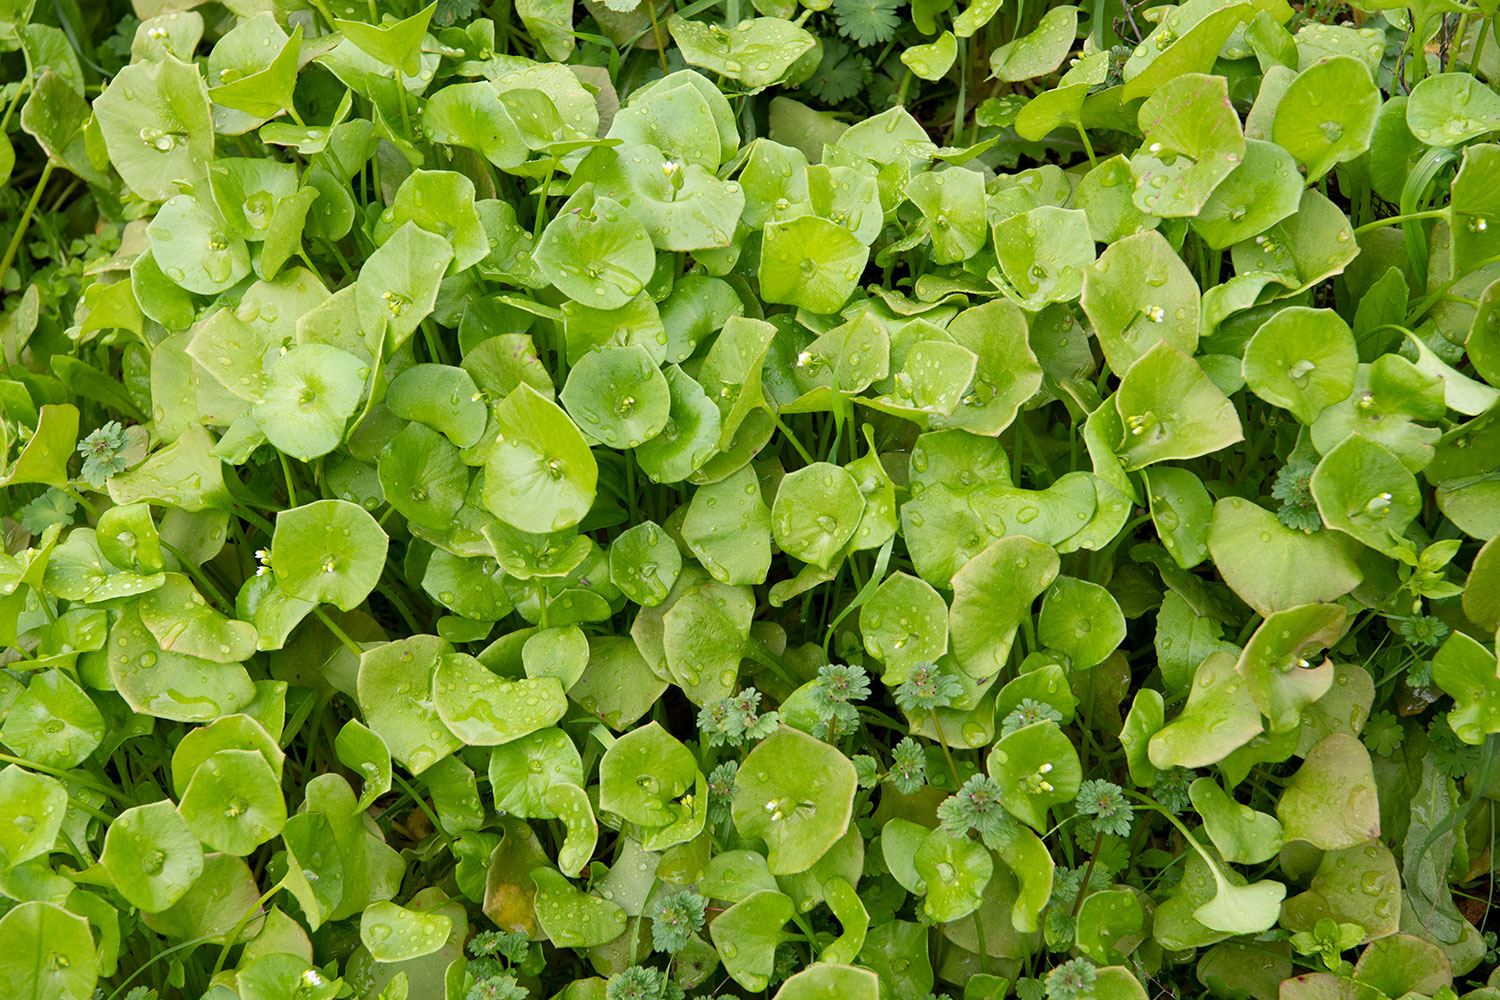 A tasty patch of bedewed miner's lettuce, growing wild.